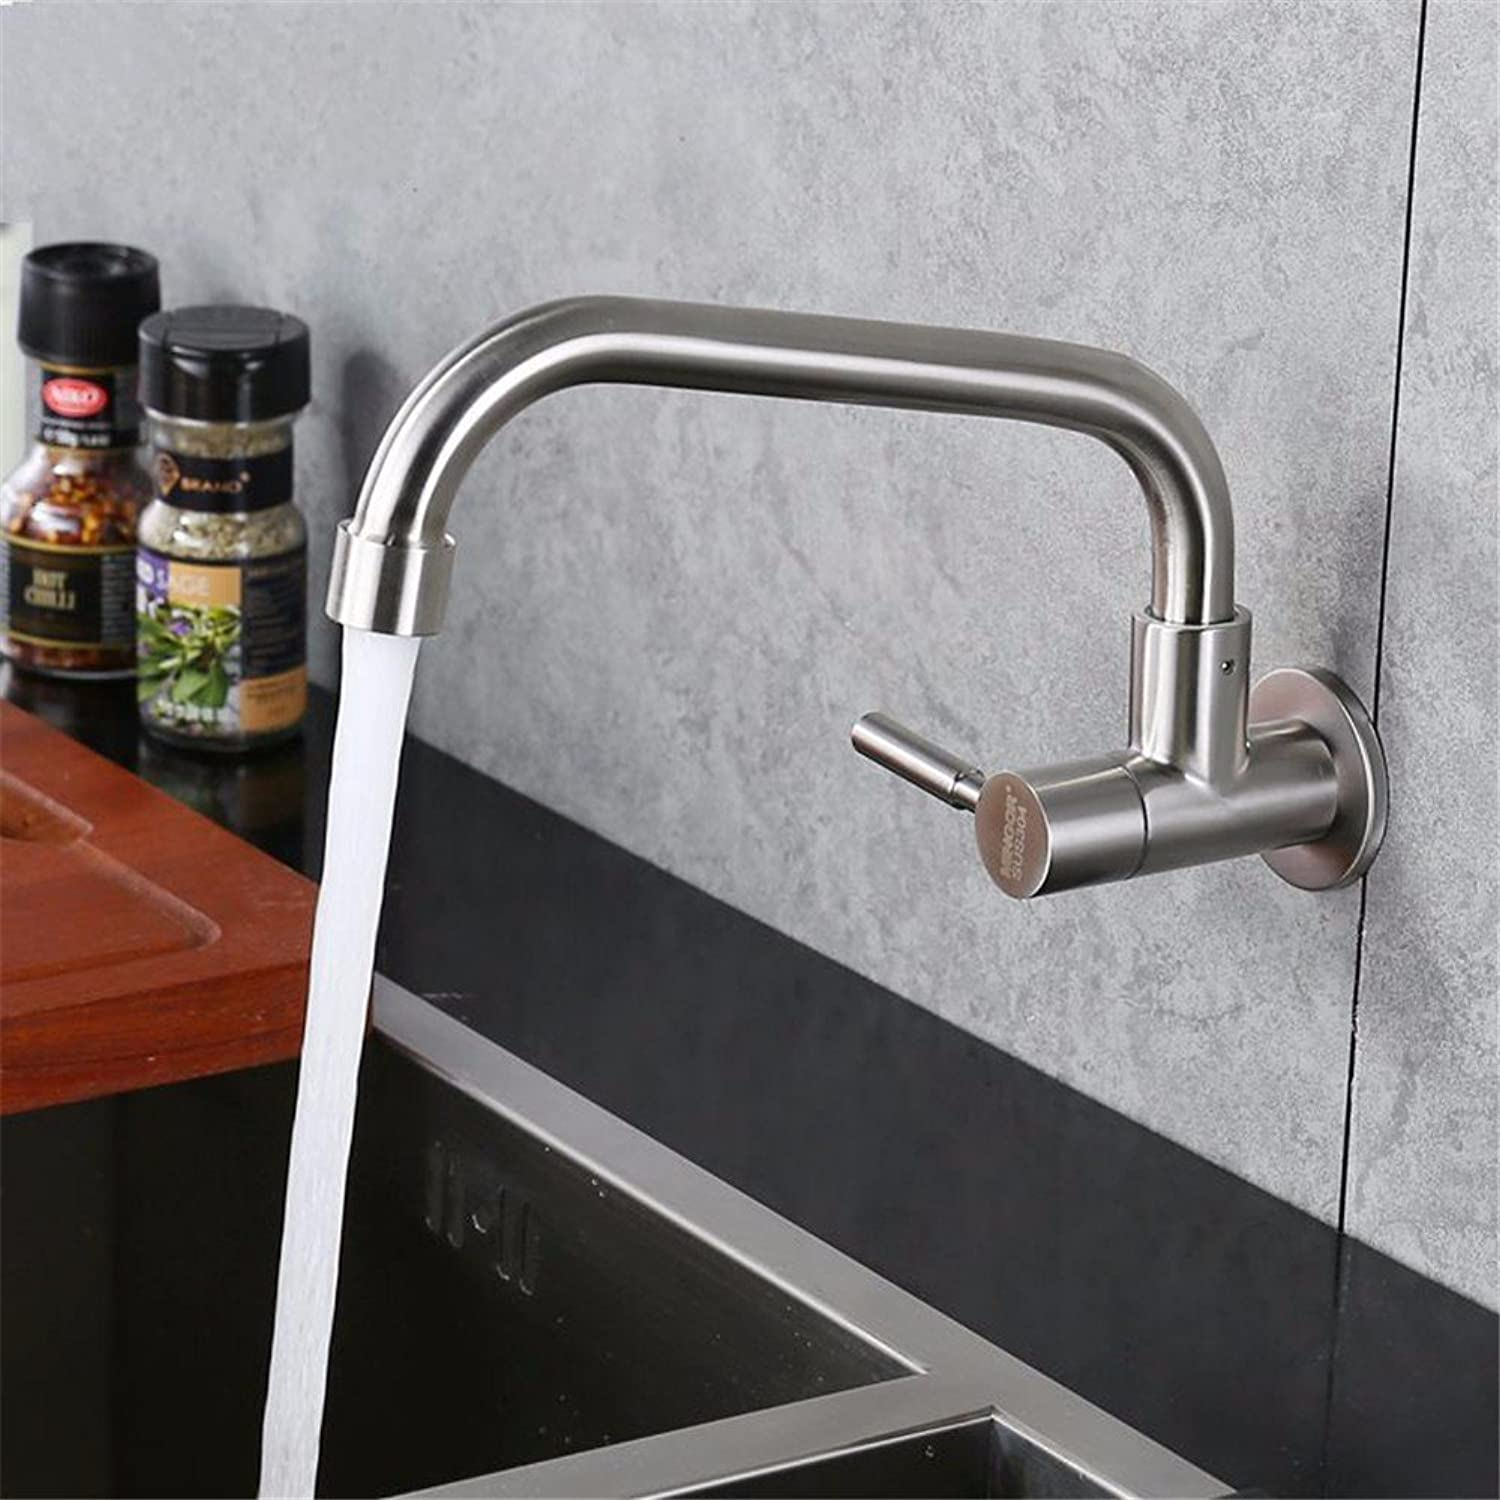 304 Stainless Steel Cold Wall Type Kitchen Vegetable Washing Basin tap Mop Washing Pool Pool redation Leading Balcony